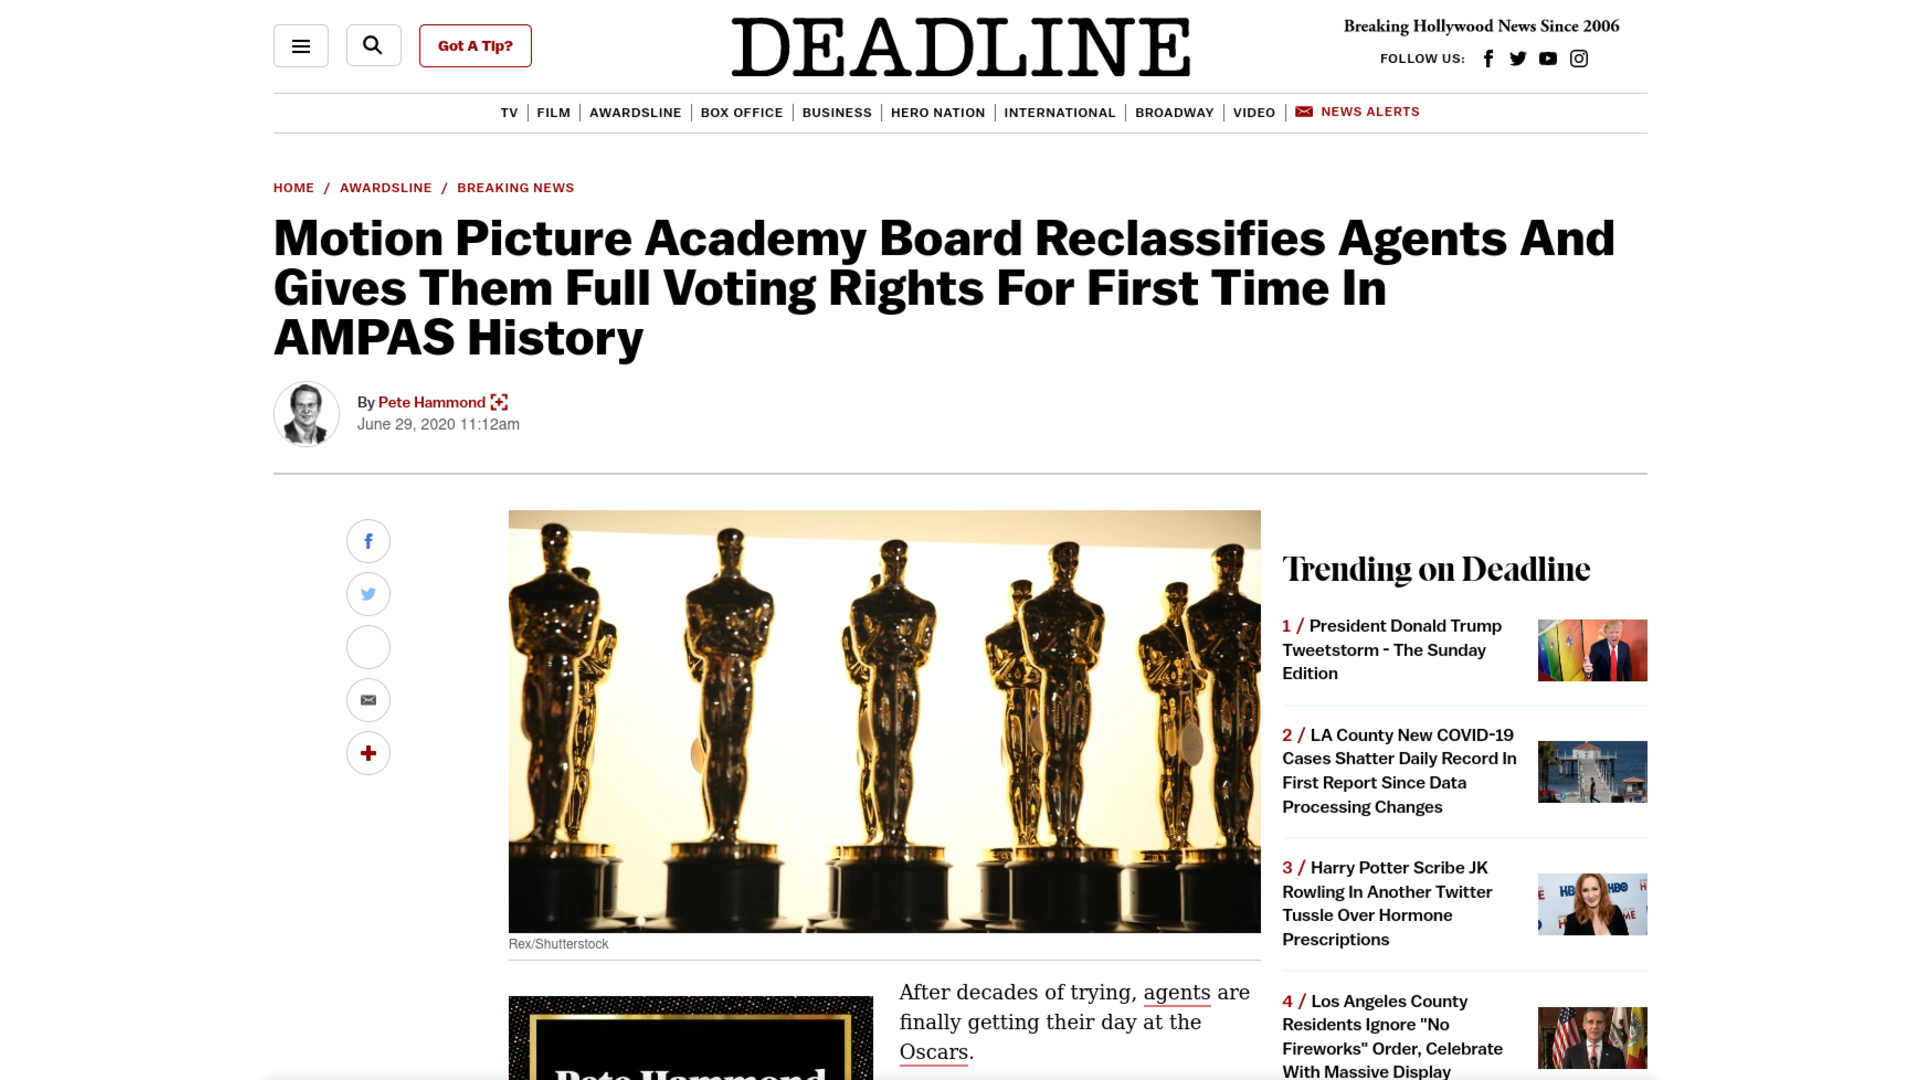 Fairness Rocks News Motion Picture Academy Board Reclassifies Agents And Gives Them Full Voting Rights For First Time In AMPAS History